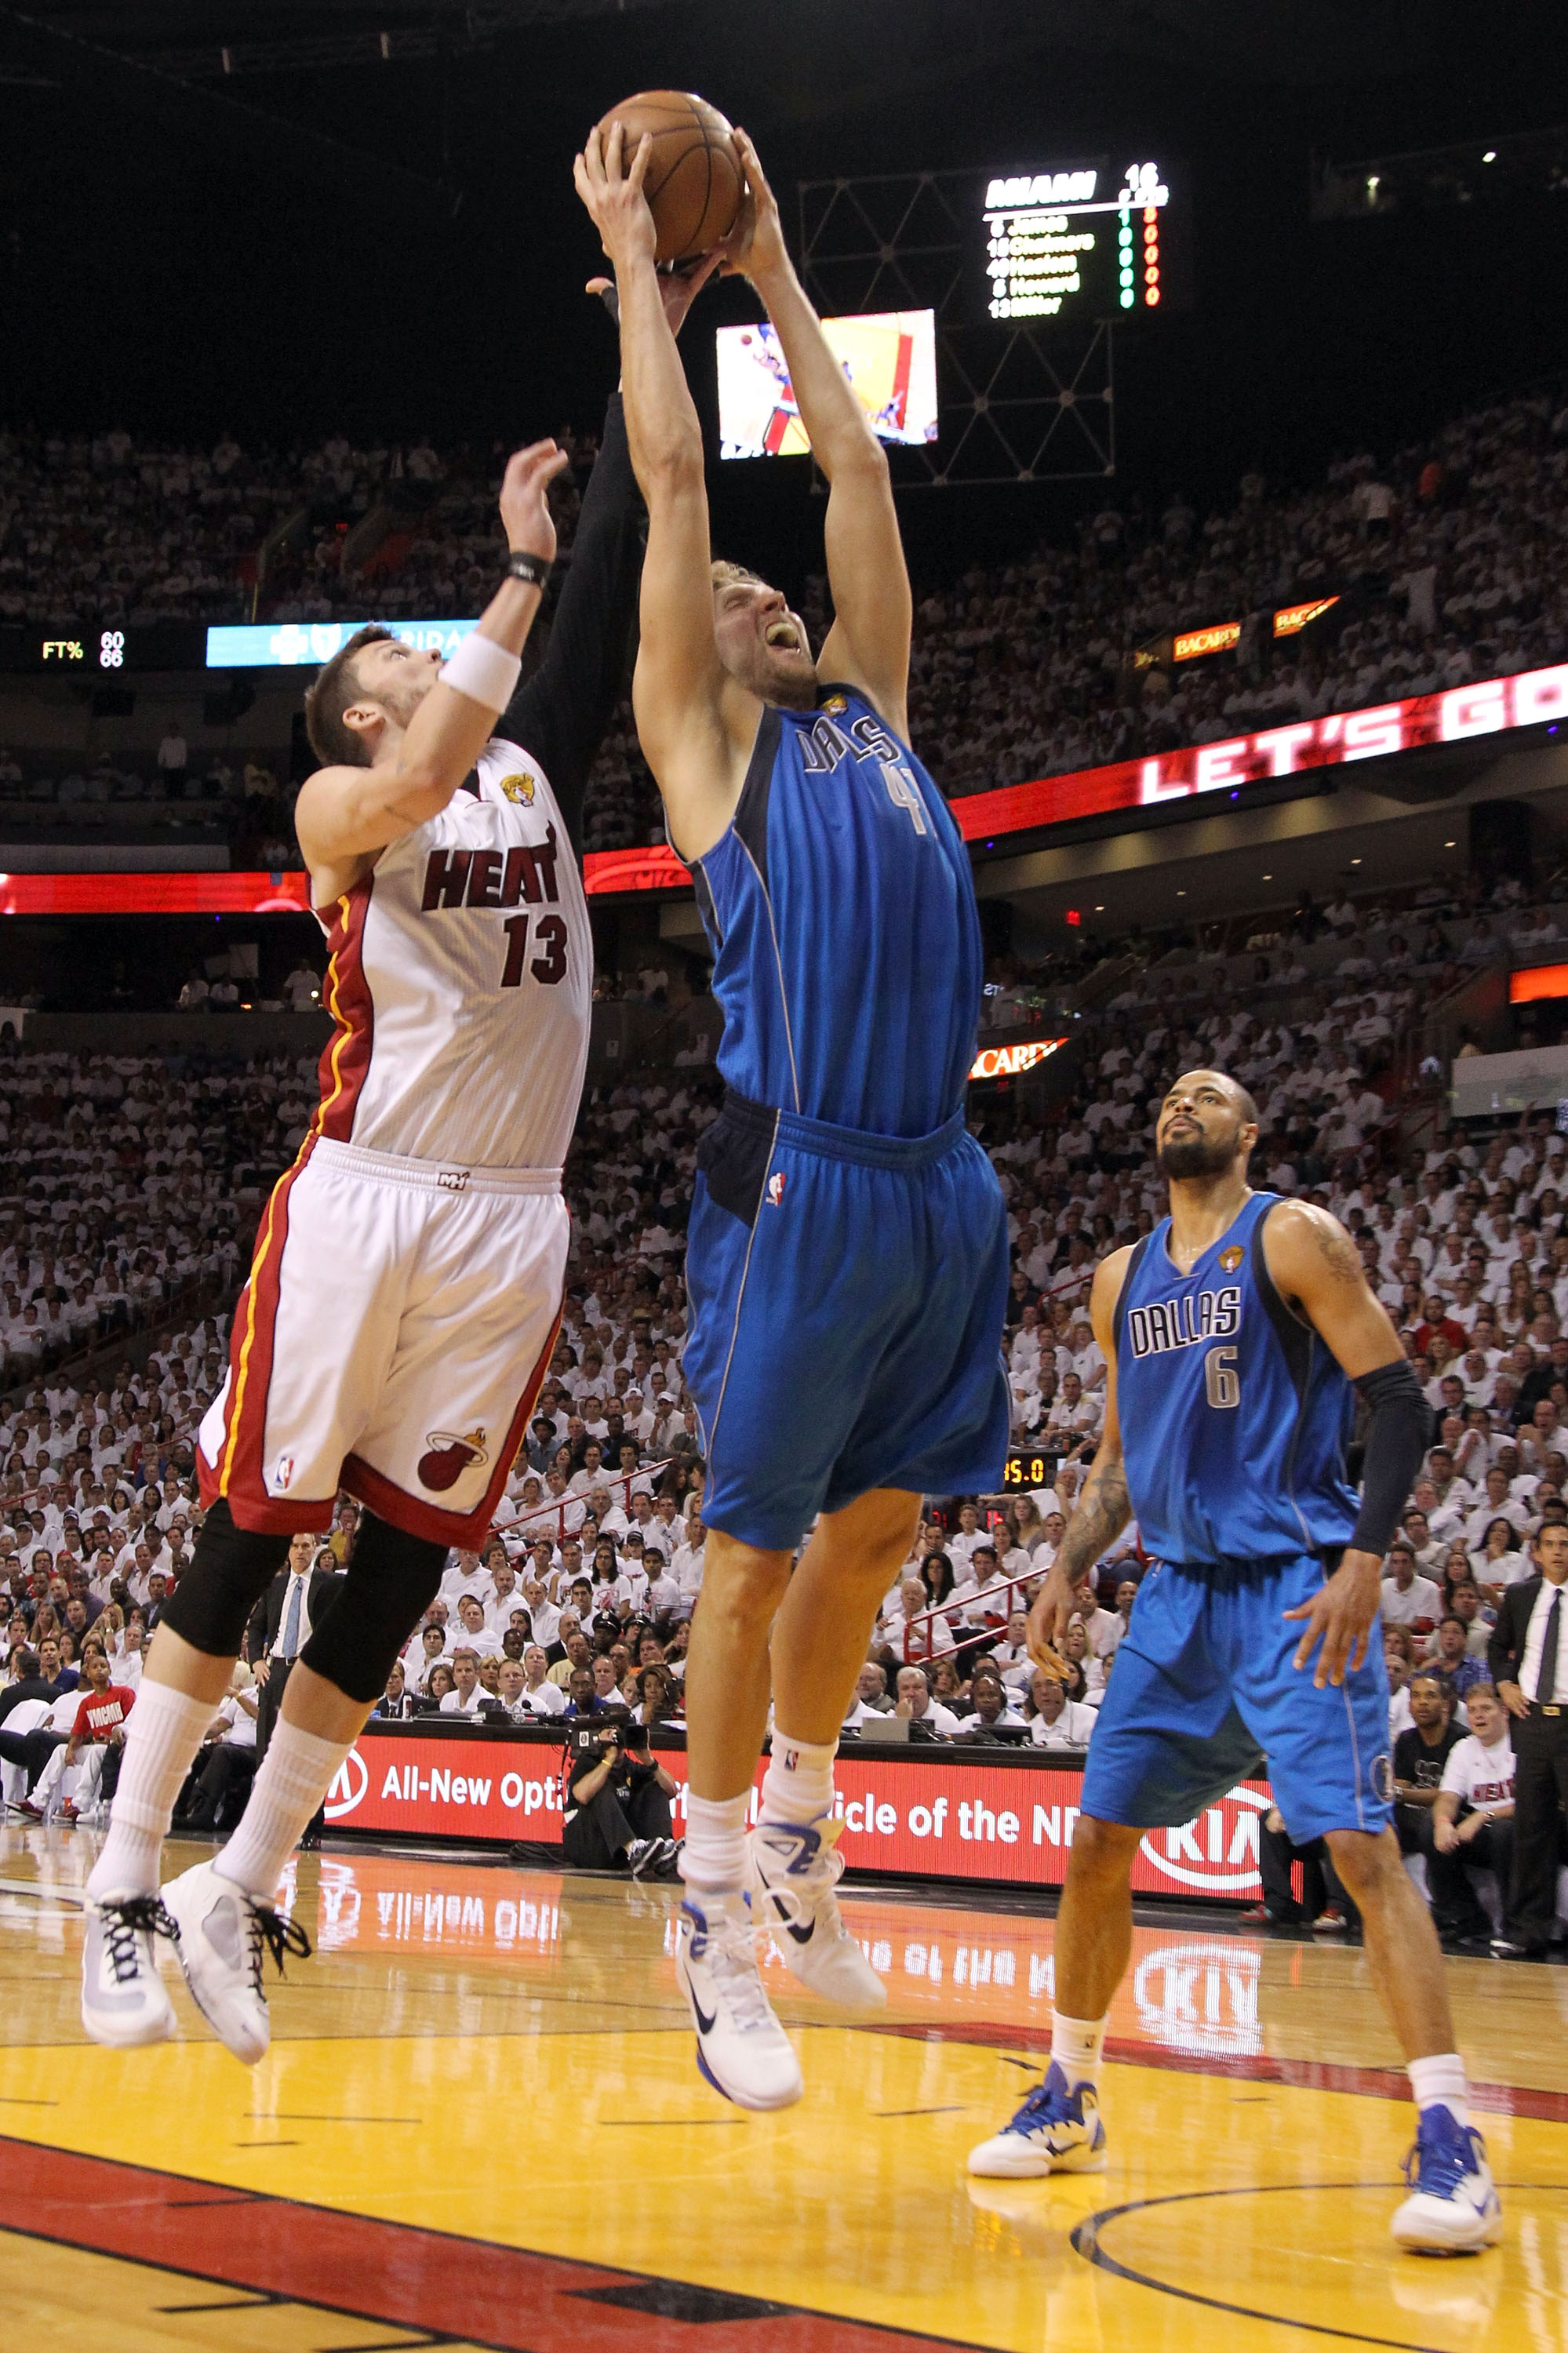 MIAMI, FL - MAY 31:  Dirk Nowitzki #41 of the Dallas Mavericks grabs a rebound against Mike Miller #13 of the Miami Heat in Game One of the 2011 NBA Finals at American Airlines Arena on May 31, 2011 in Miami, Florida. NOTE TO USER: User expressly acknowle